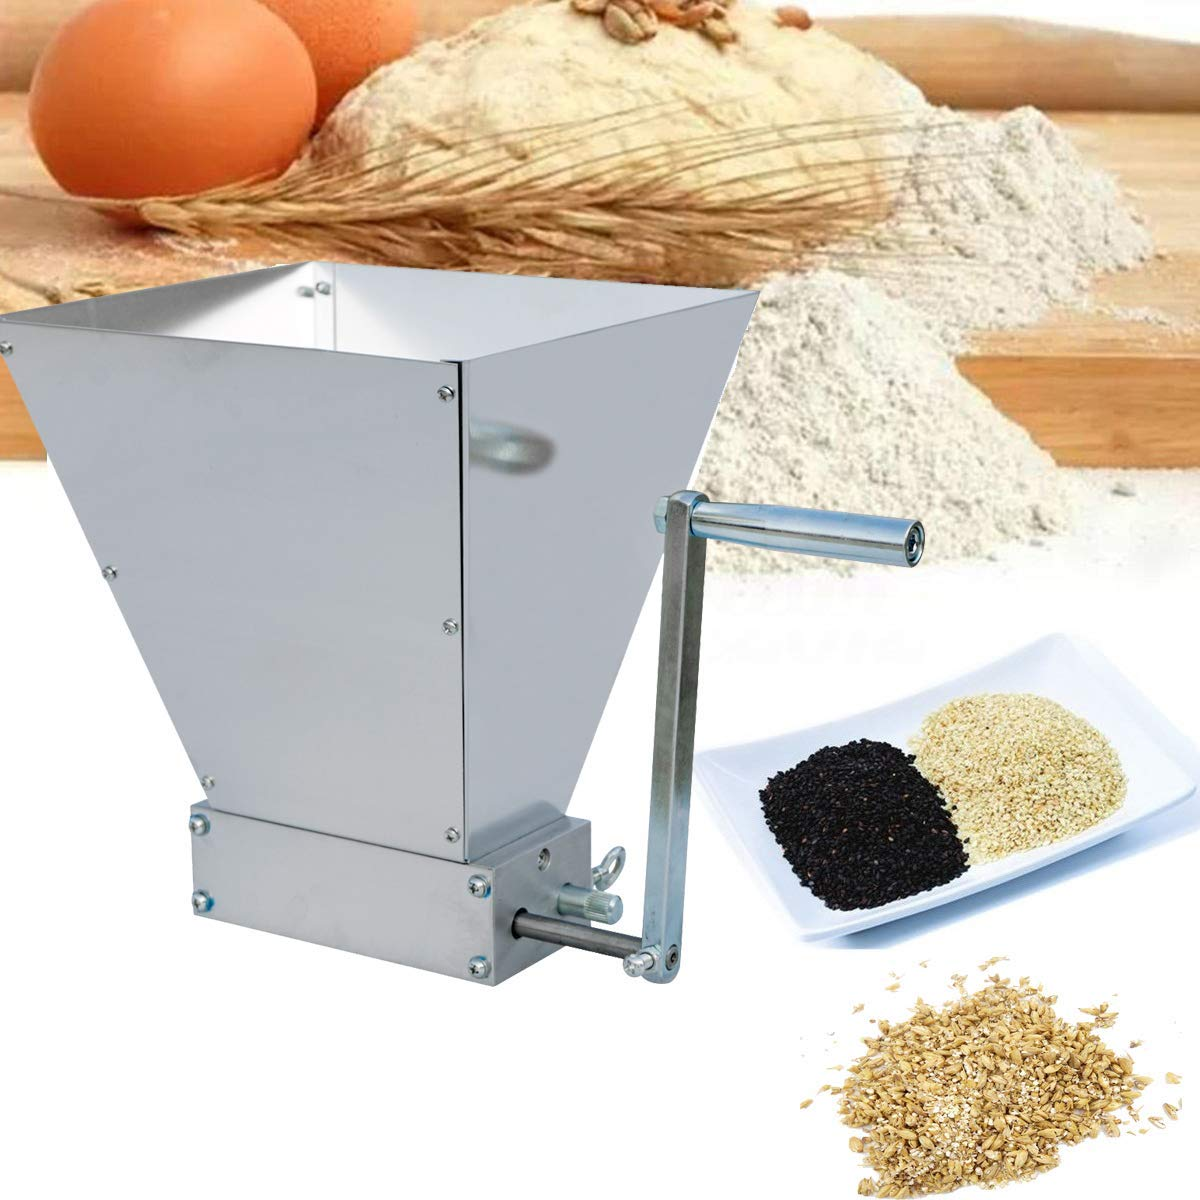 ECO-WORTHY Barley Crusher 2-Roller Malt Mill Grinder for All-Grain Home Brewing Beer 7.7 lbs Capacity by ECO-WORTHY (Image #7)